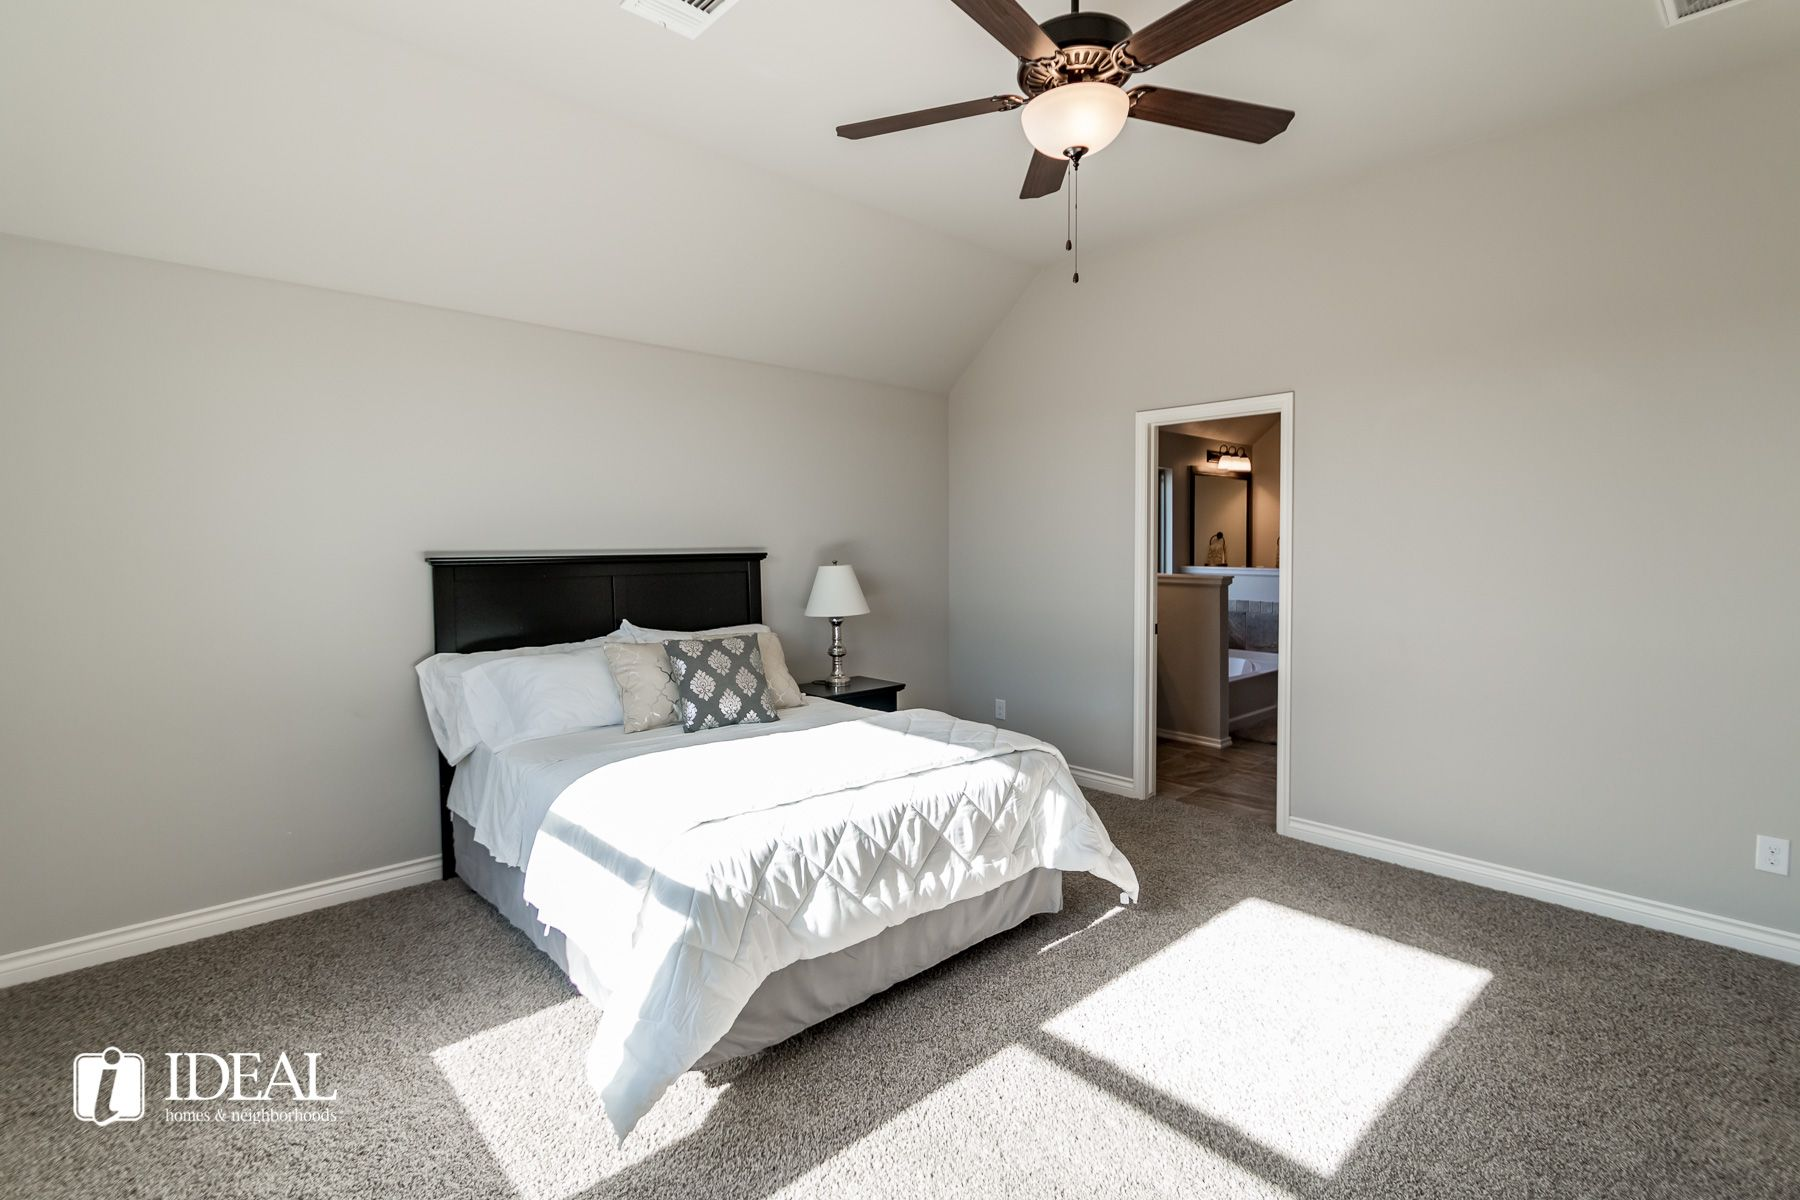 Bedroom featured in the Stafford By Ideal Homes in Oklahoma City, OK